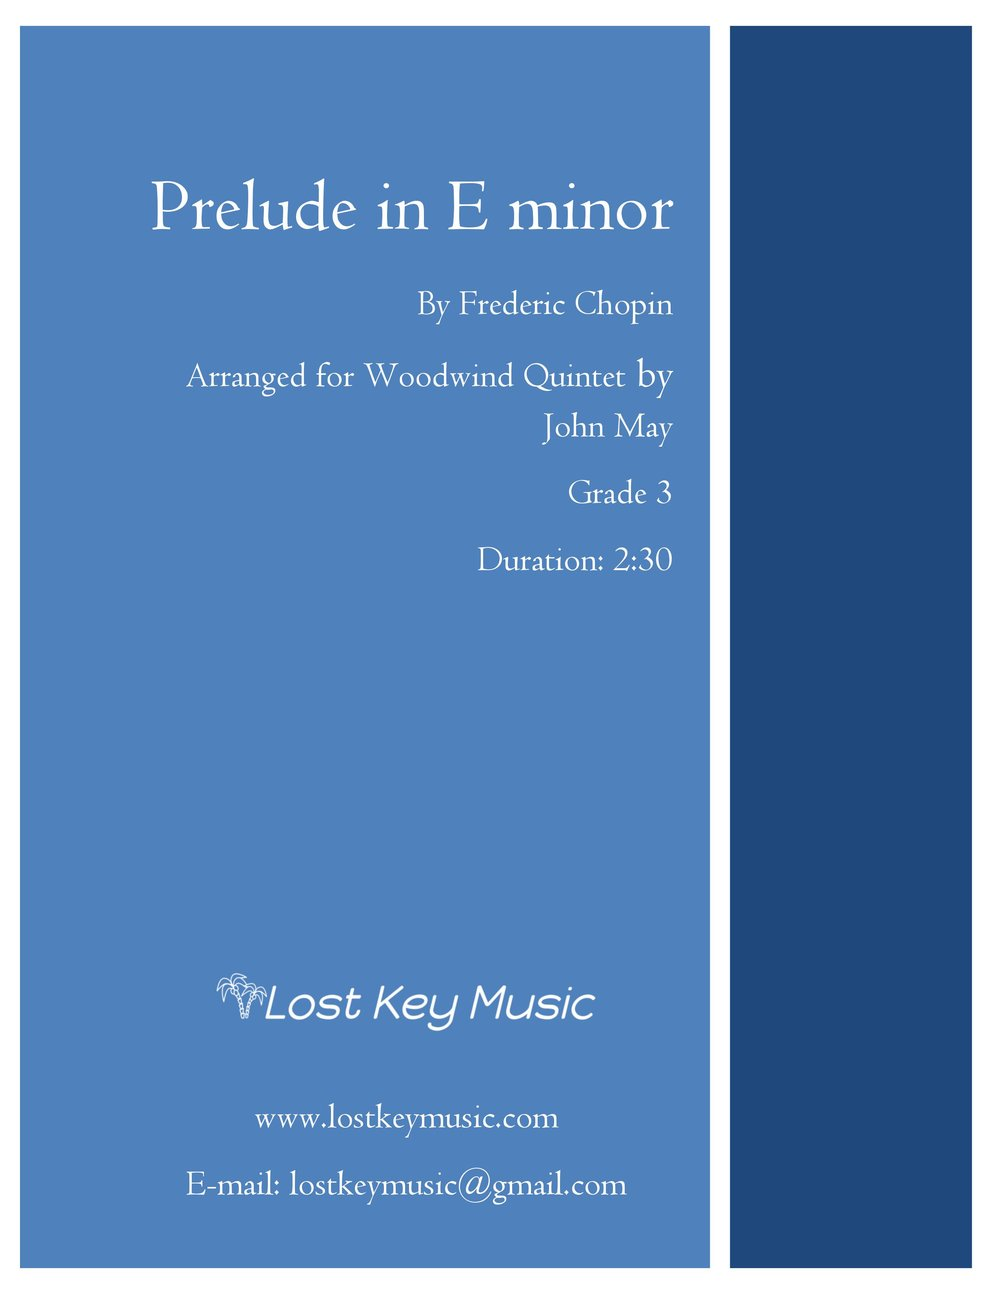 Chopin Prelude in E minor-Woodwind Quintet-Cover Page.jpg